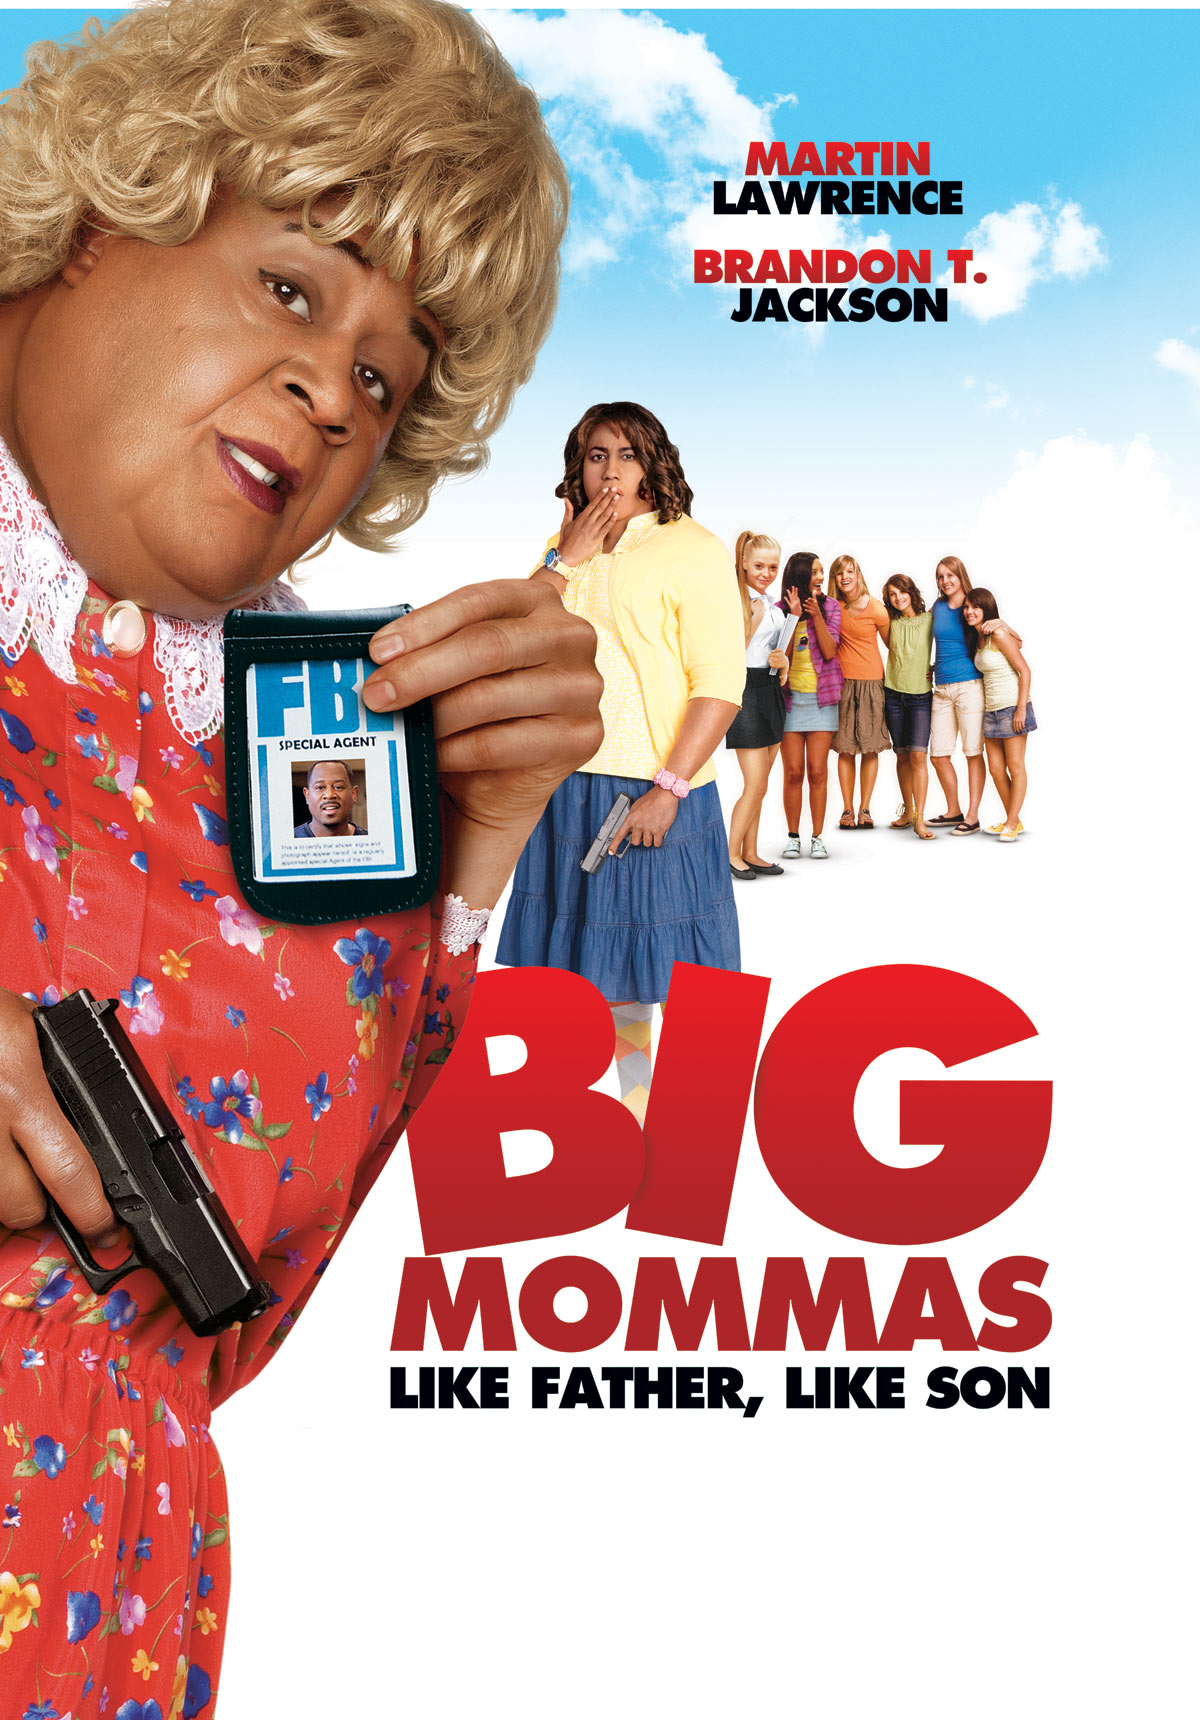 Big Momma's House movies in France